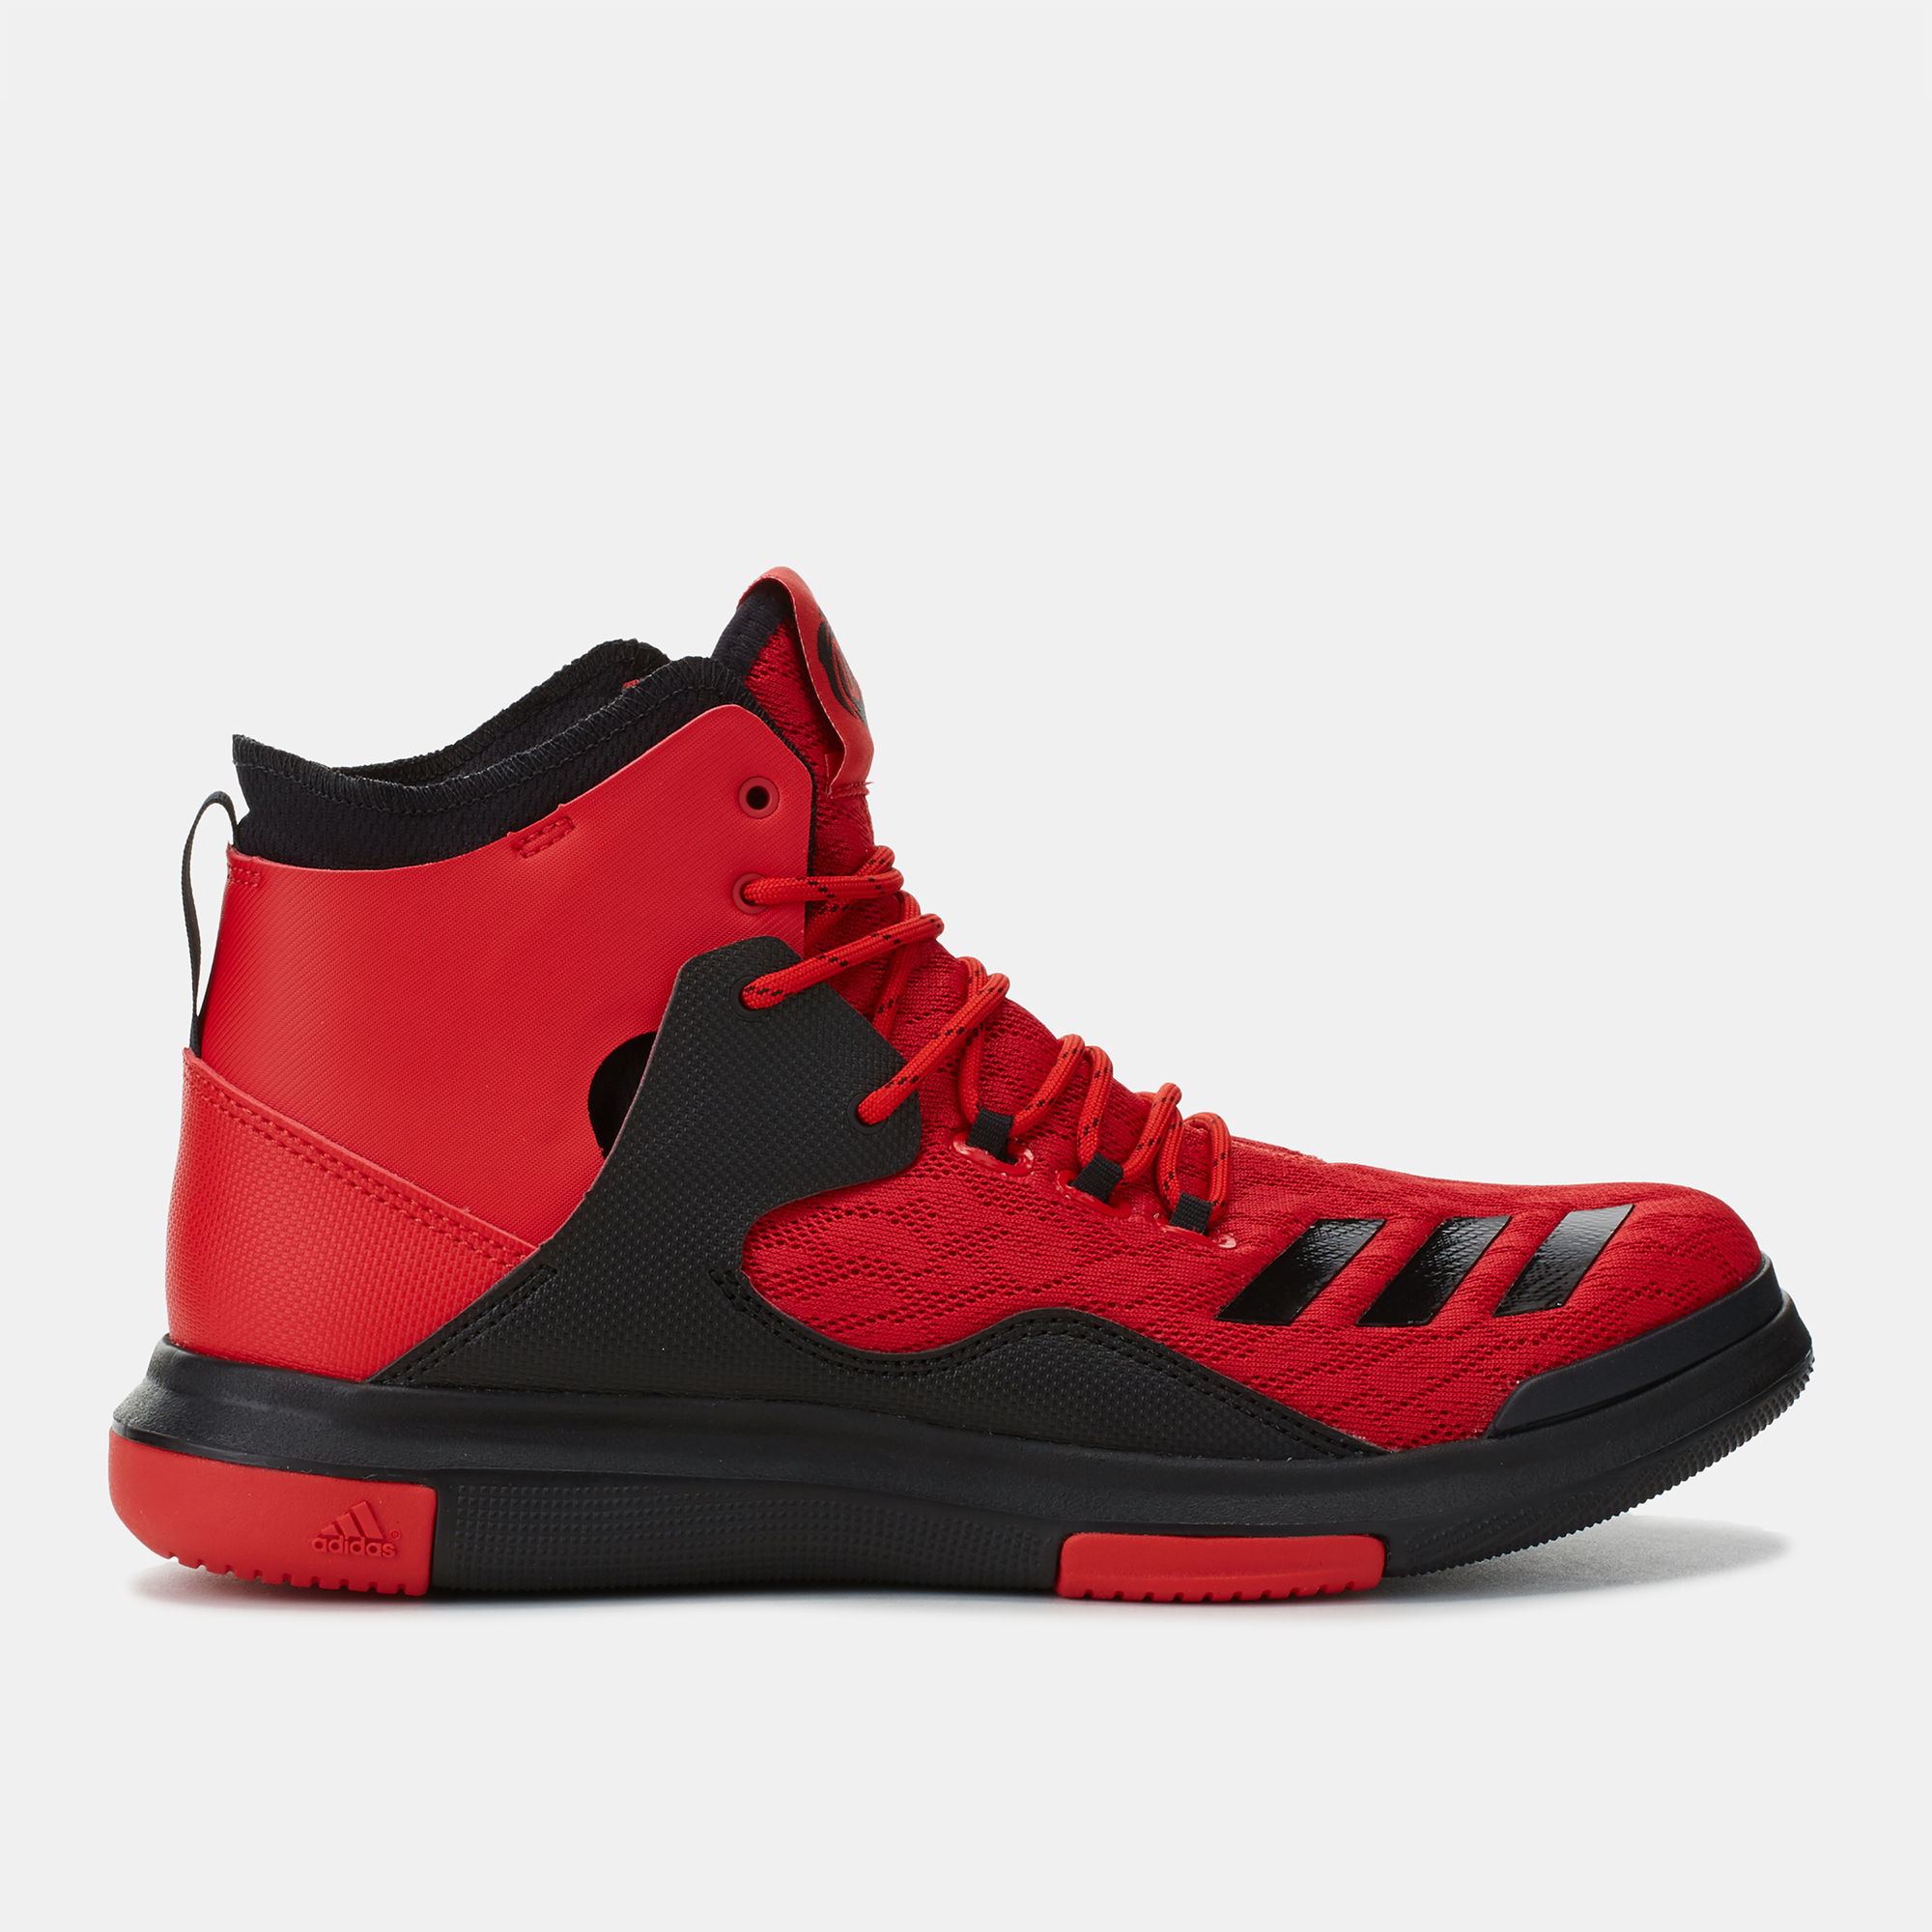 best website ab24b f861e adidas D Rose Lakeshore Ultra Basketball Shoe  Basketball Shoes  Shoes   Mens Sale  Sale  SSS